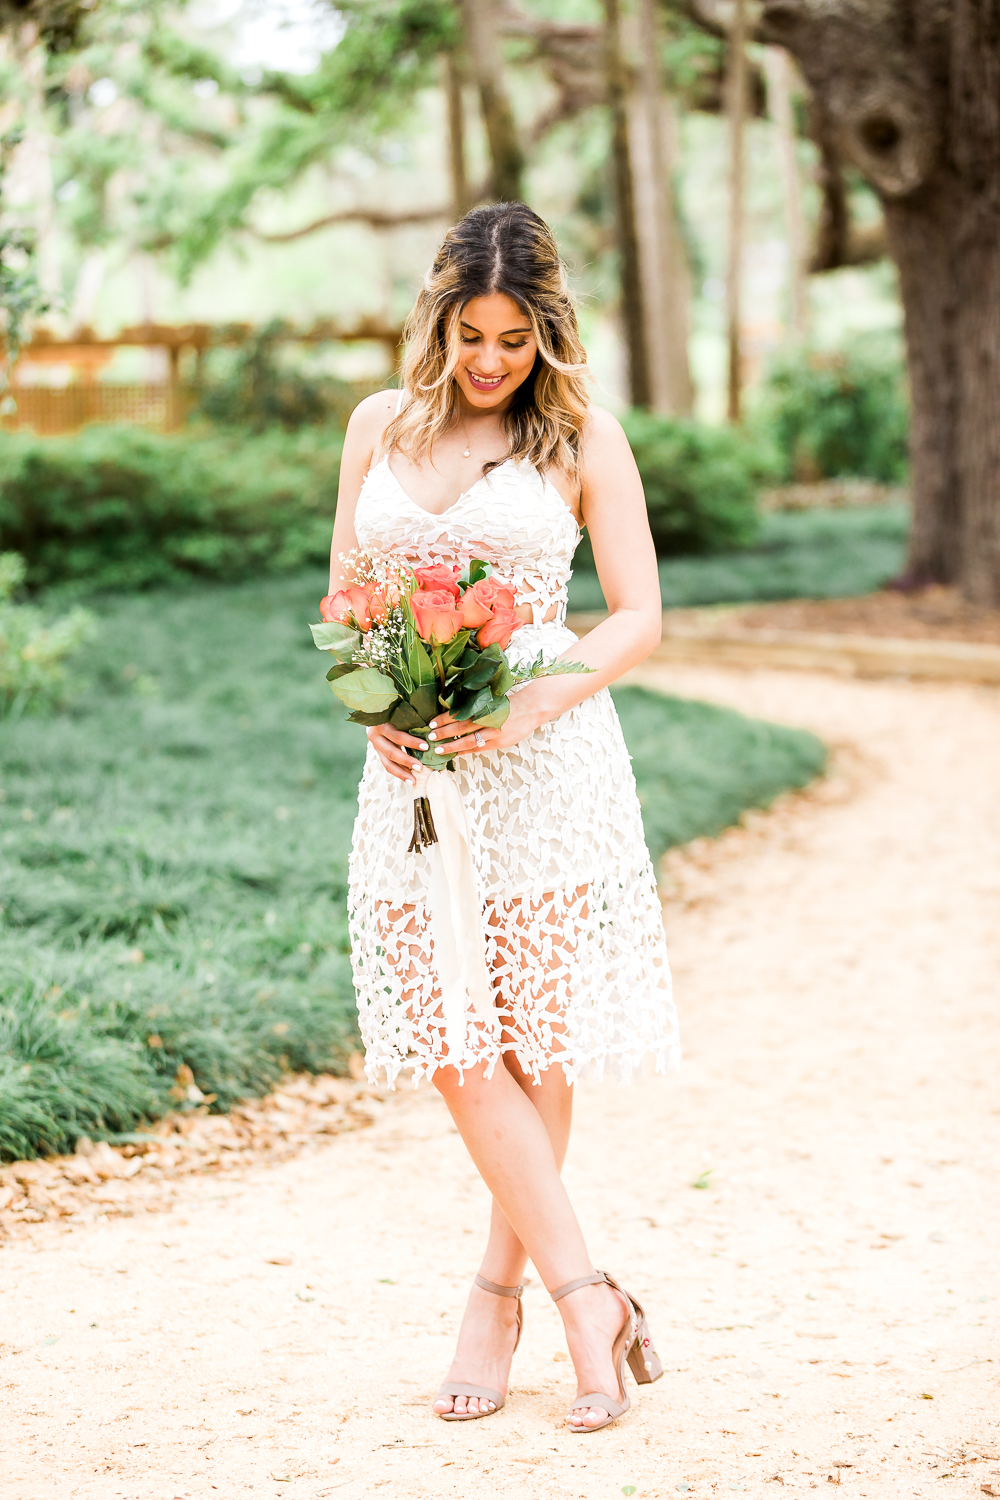 Outfit ideas for women for engagement session